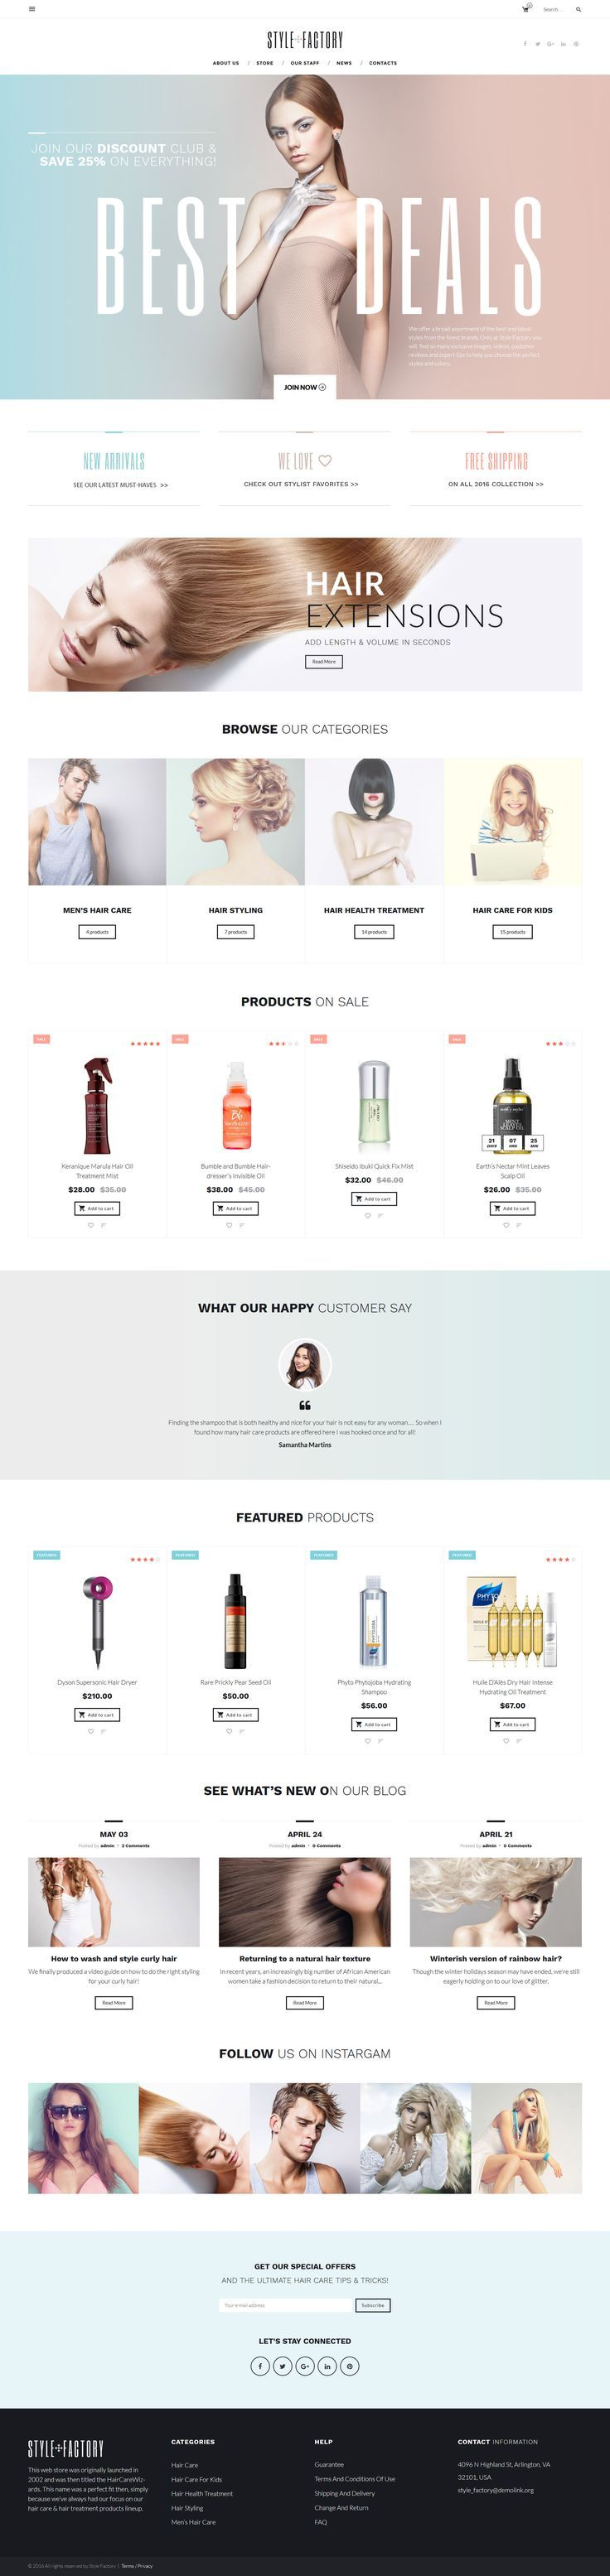 Style Factory - Hair Care & Hair Styling WooCommerce Theme - https://www.templatemonster.com/woocommerce-themes/61305.html